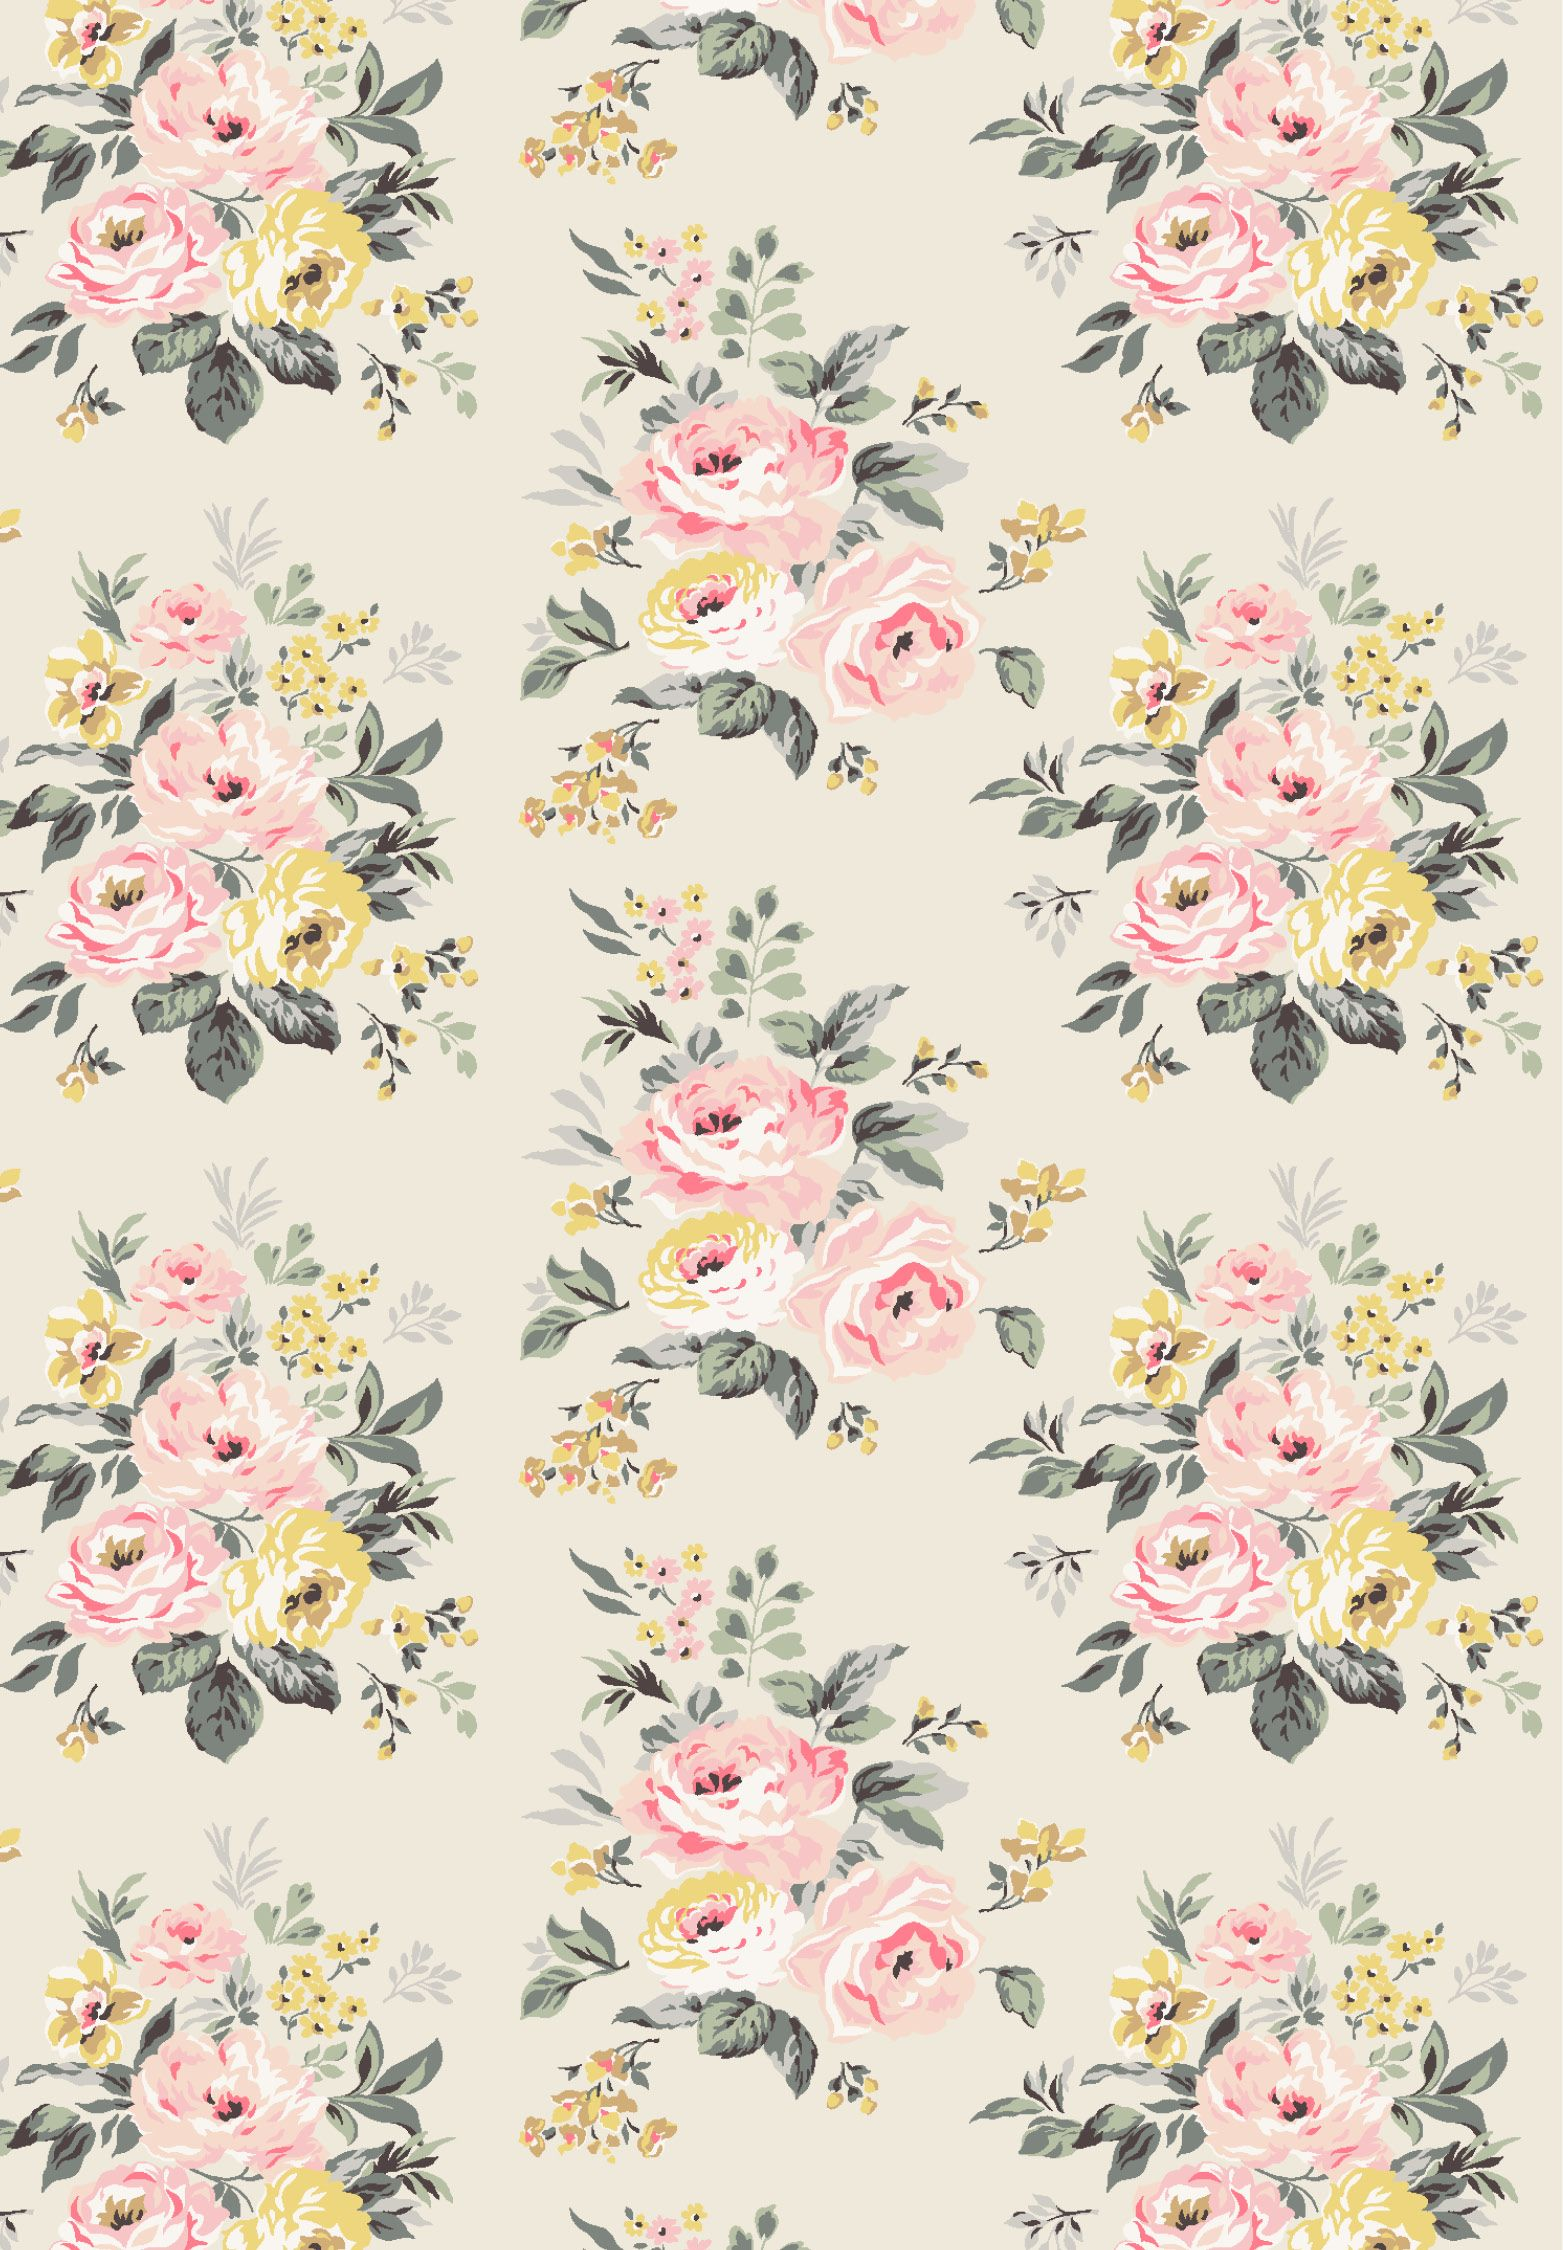 Vintage Bunch Print Beautiful Pink Yellow Flowers On A Cream Background Simple Fresh F Vintage Flowers Wallpaper Iphone Wallpaper Vintage Flower Wallpaper